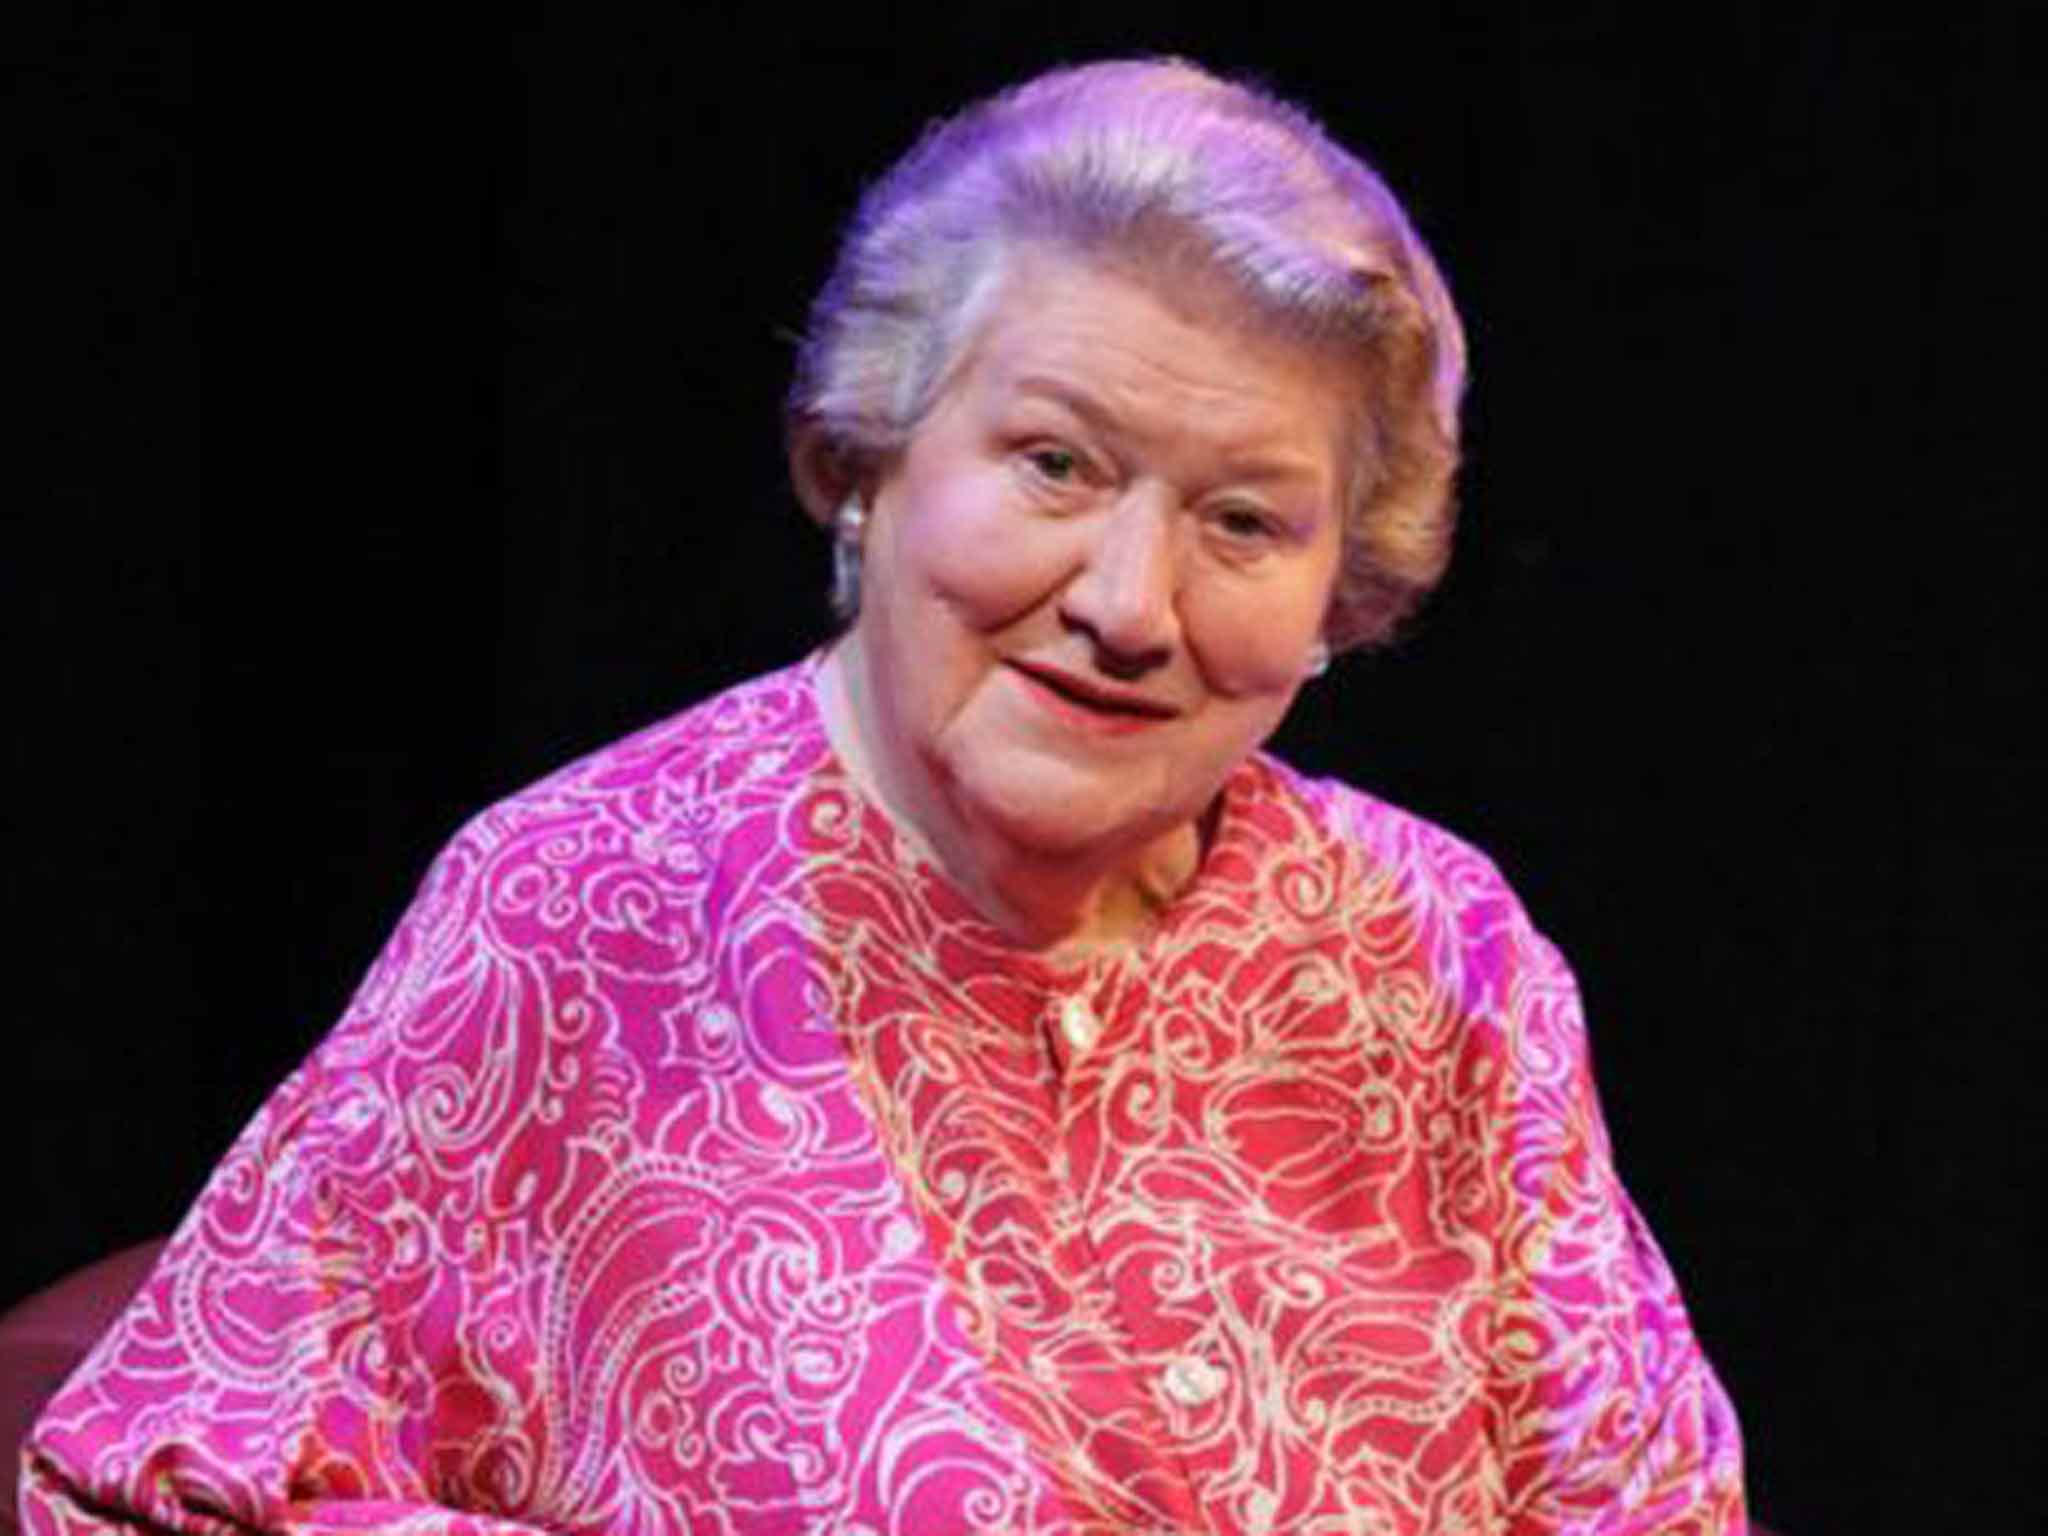 Patricia Routledge (born 1929) Patricia Routledge (born 1929) new images